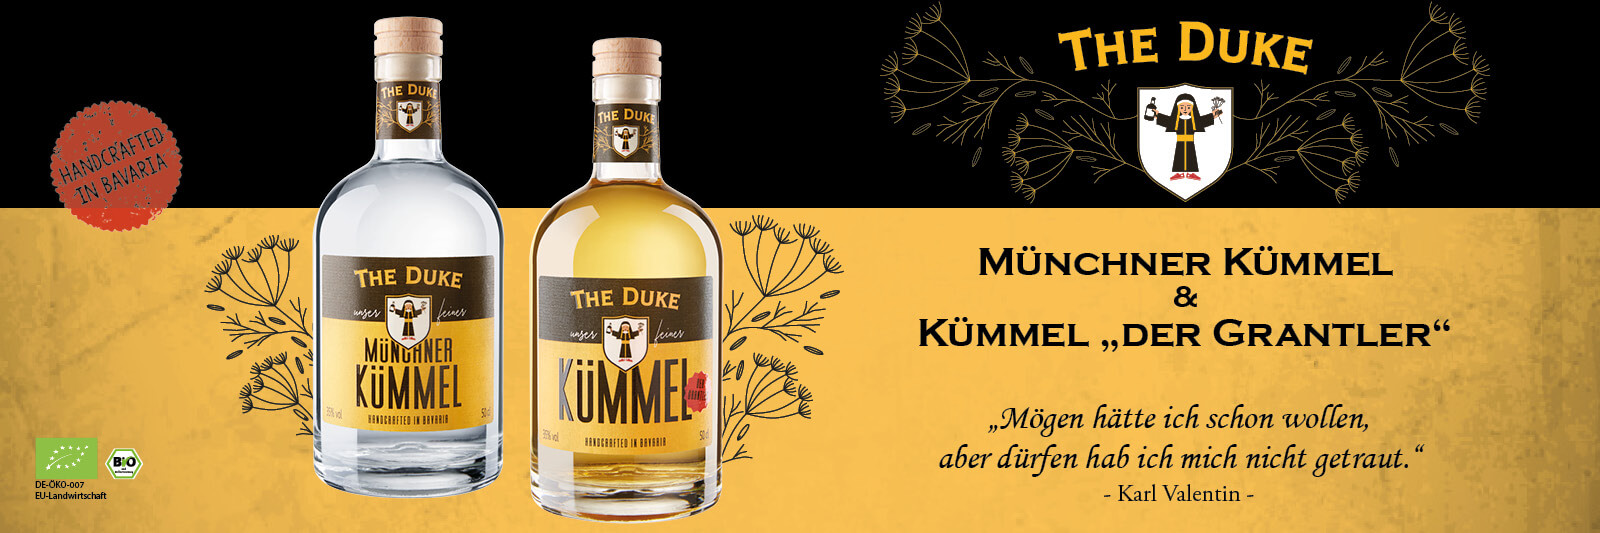 The Duke Kümmel